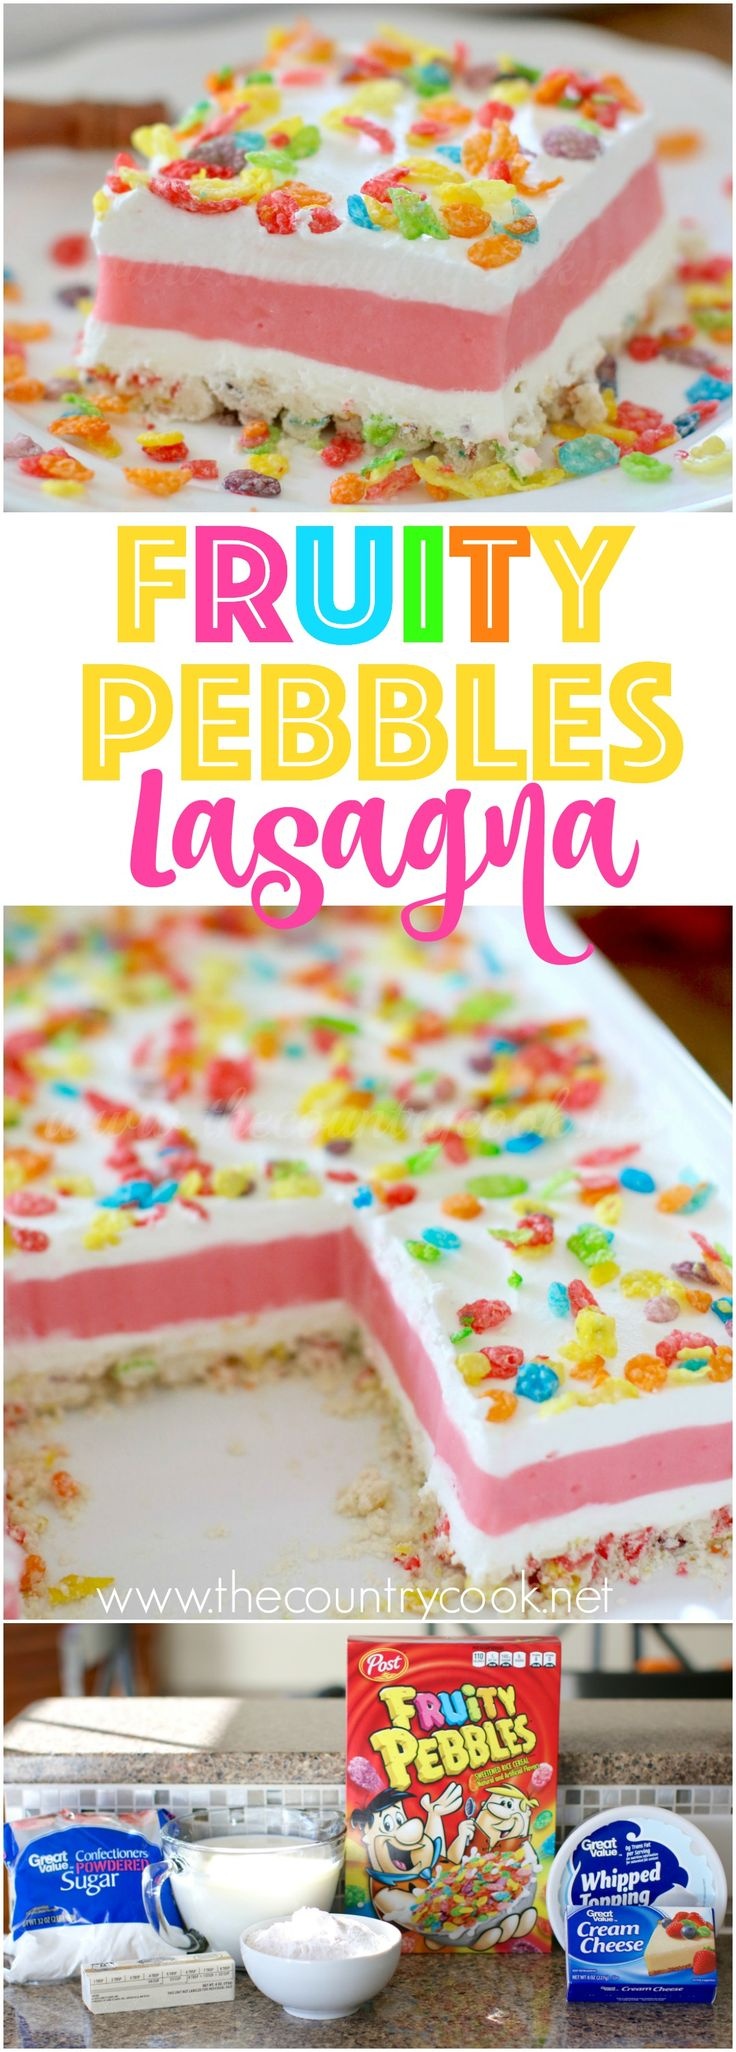 Fruity Pebbles Lasagna recipe from The Country Cook is layers of goodness! Fruity Pebble shortbread crust with layers of strawberry pudding and whipped cream topping. Always a hit! #ad